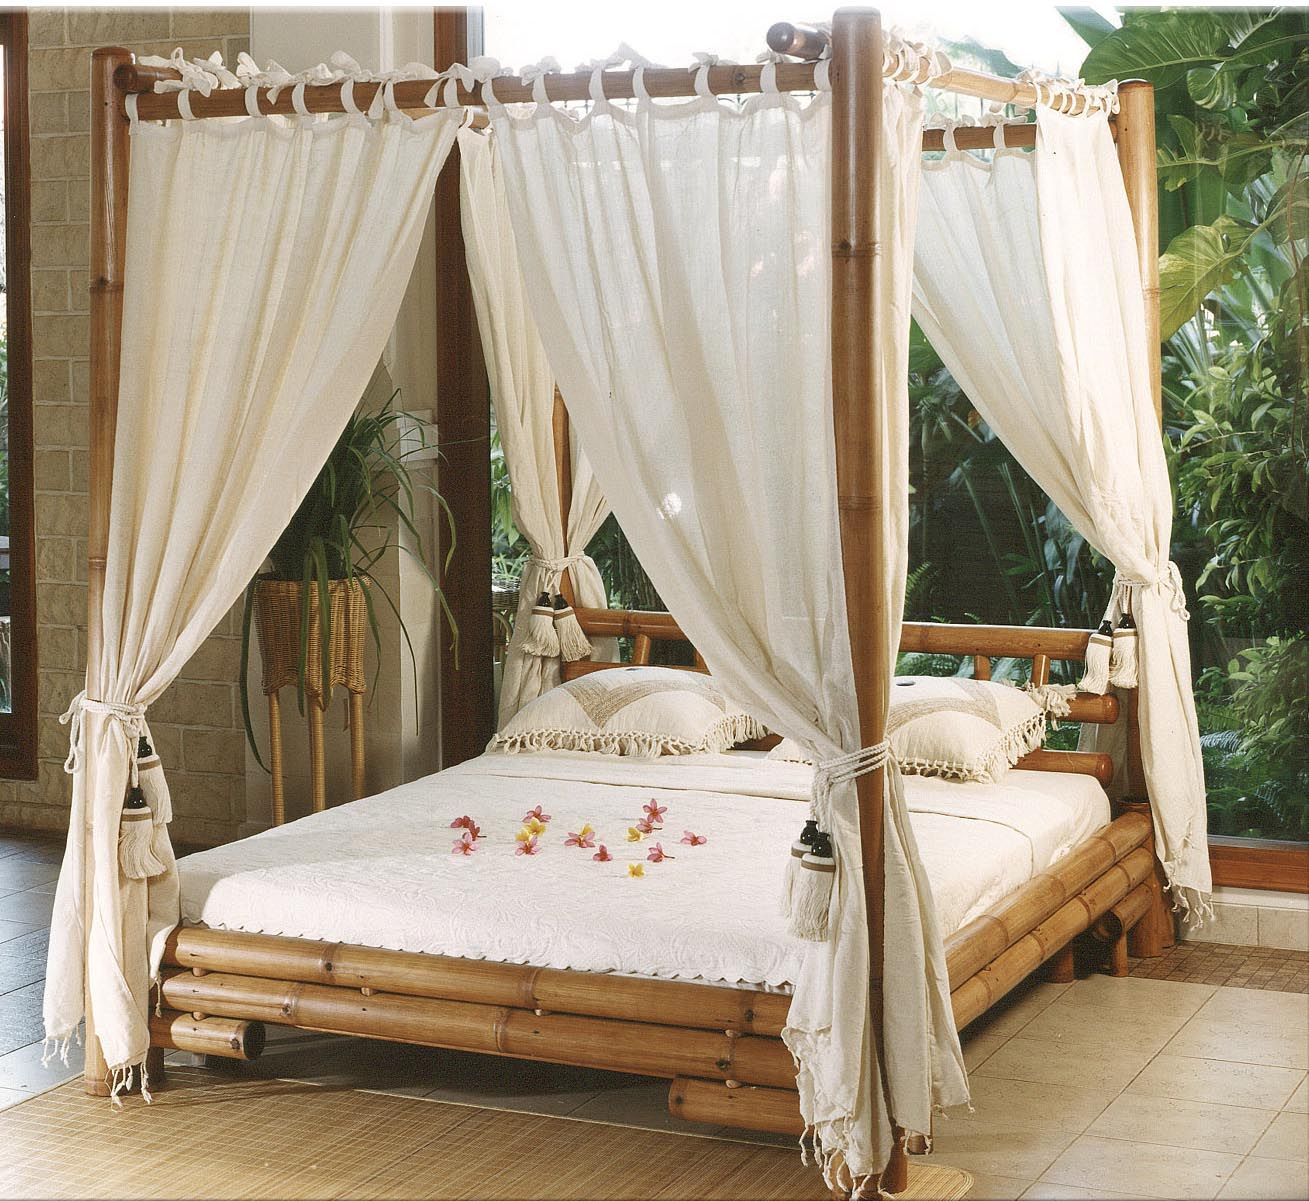 Letto Baldacchino.Letto Baldacchino In Bambu Canopy Bed Frame Queen Canopy Bed